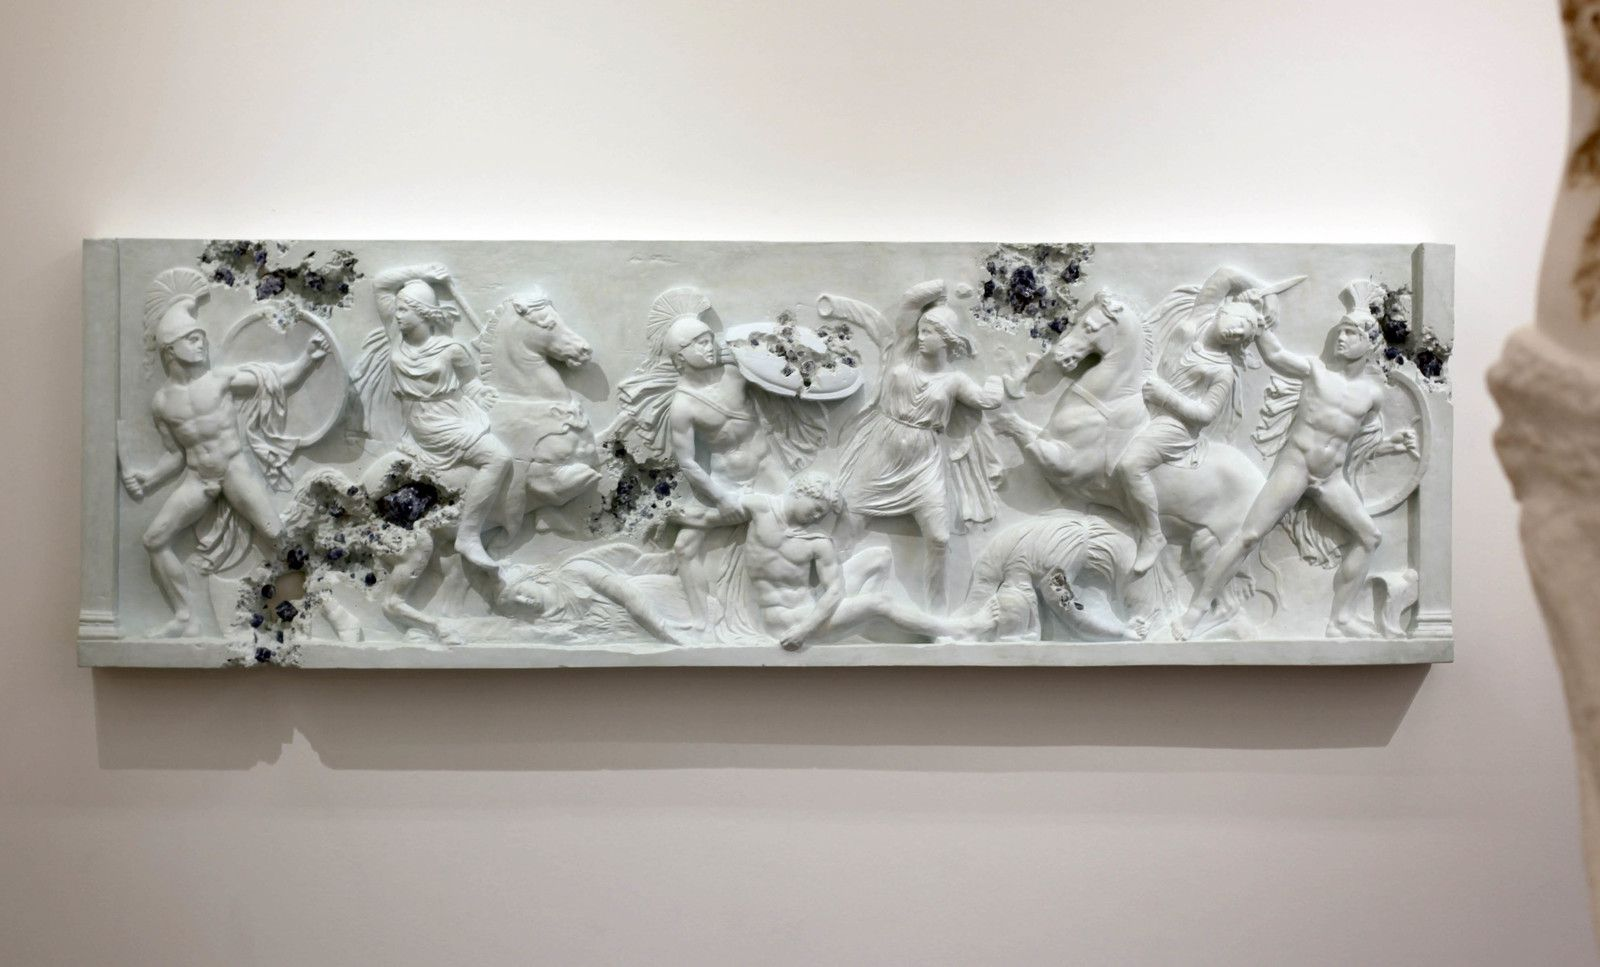 """Blue Calcite Eroded Sarcophagus with Nereids"", 2019 de Daniel ARSHAM - Courtesy de l'artiste et la galerie Perrotin © Photo Éric Simon"